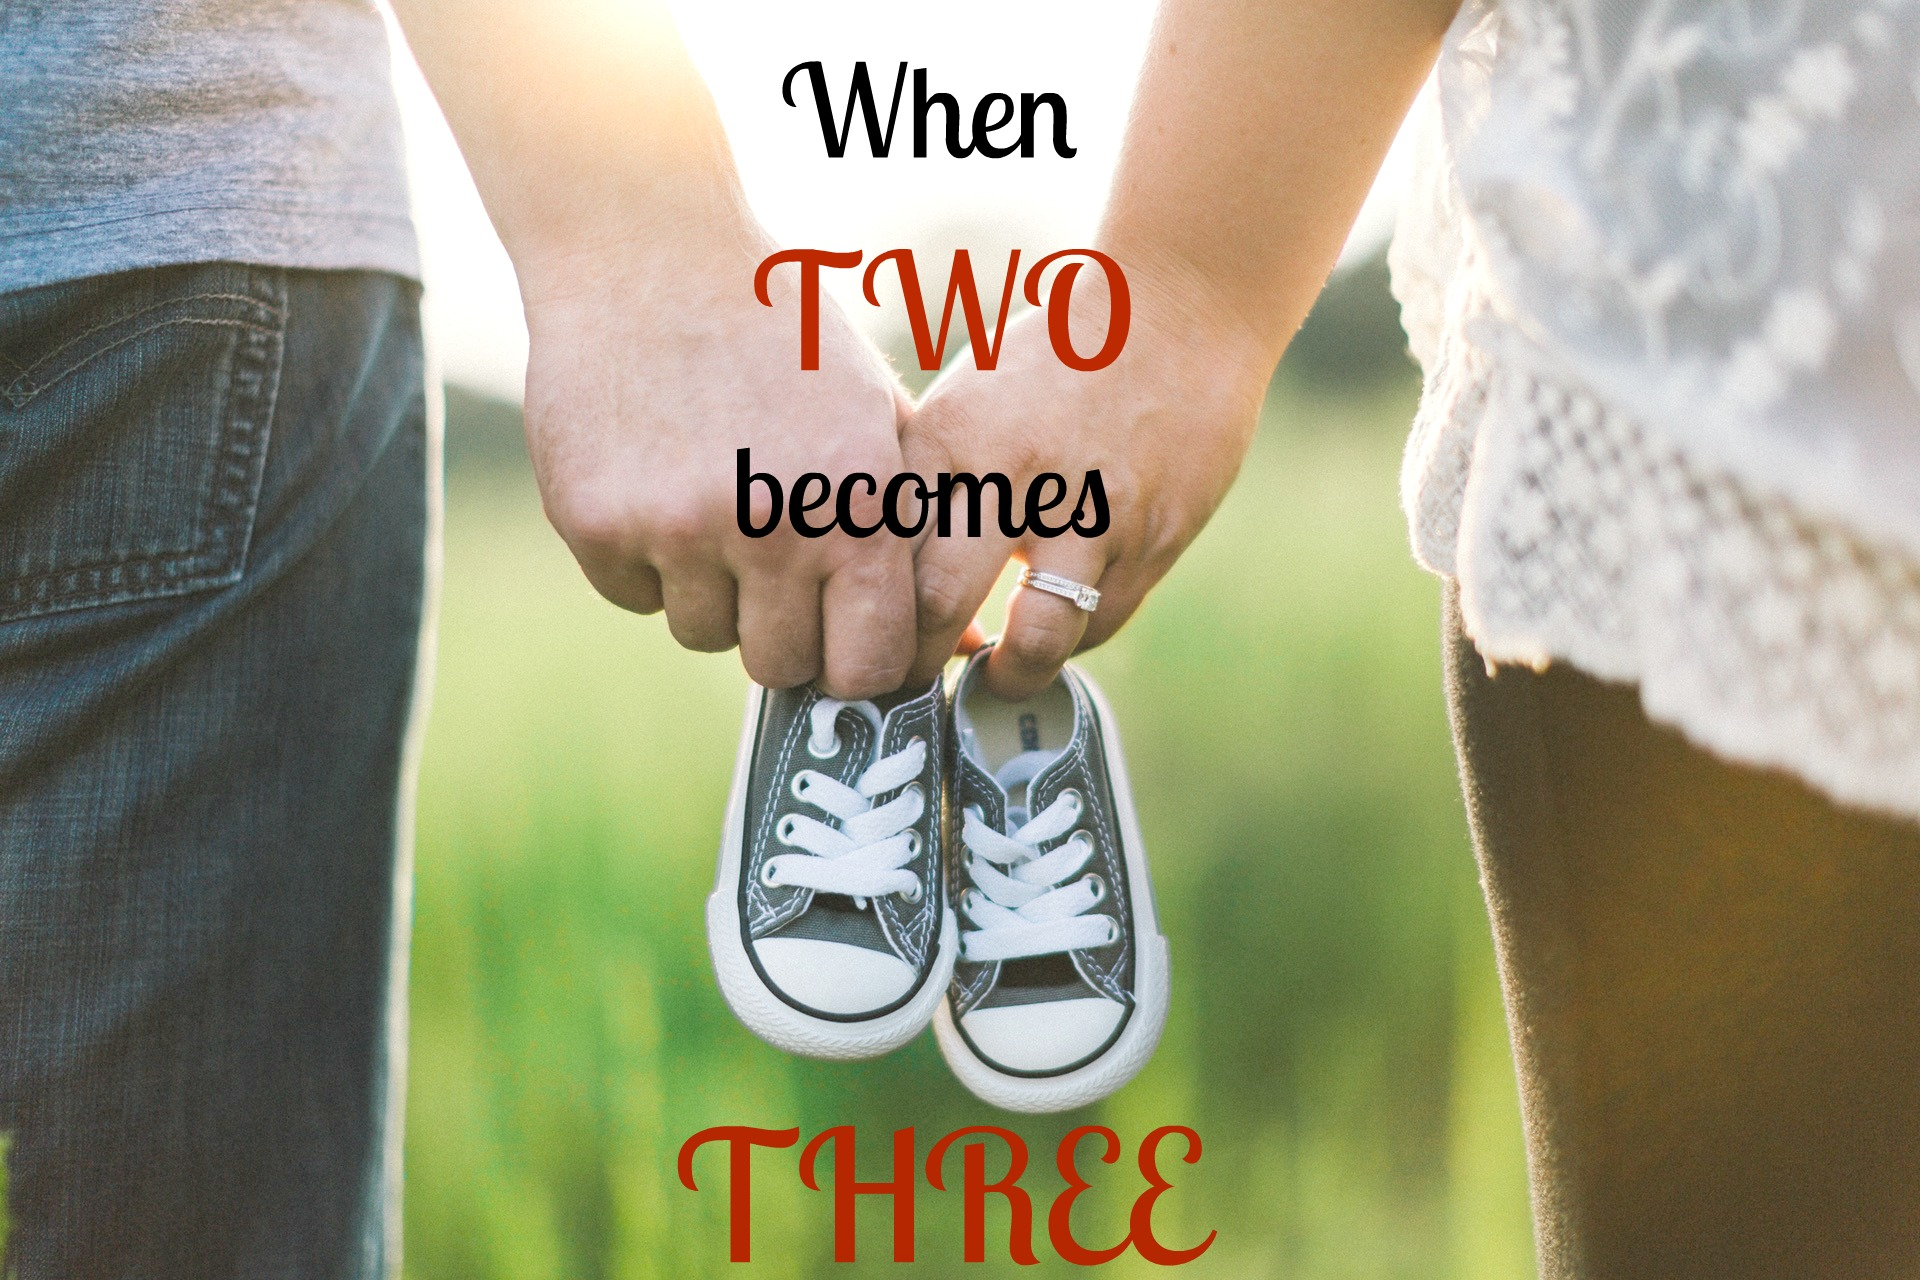 When Two becomes Three